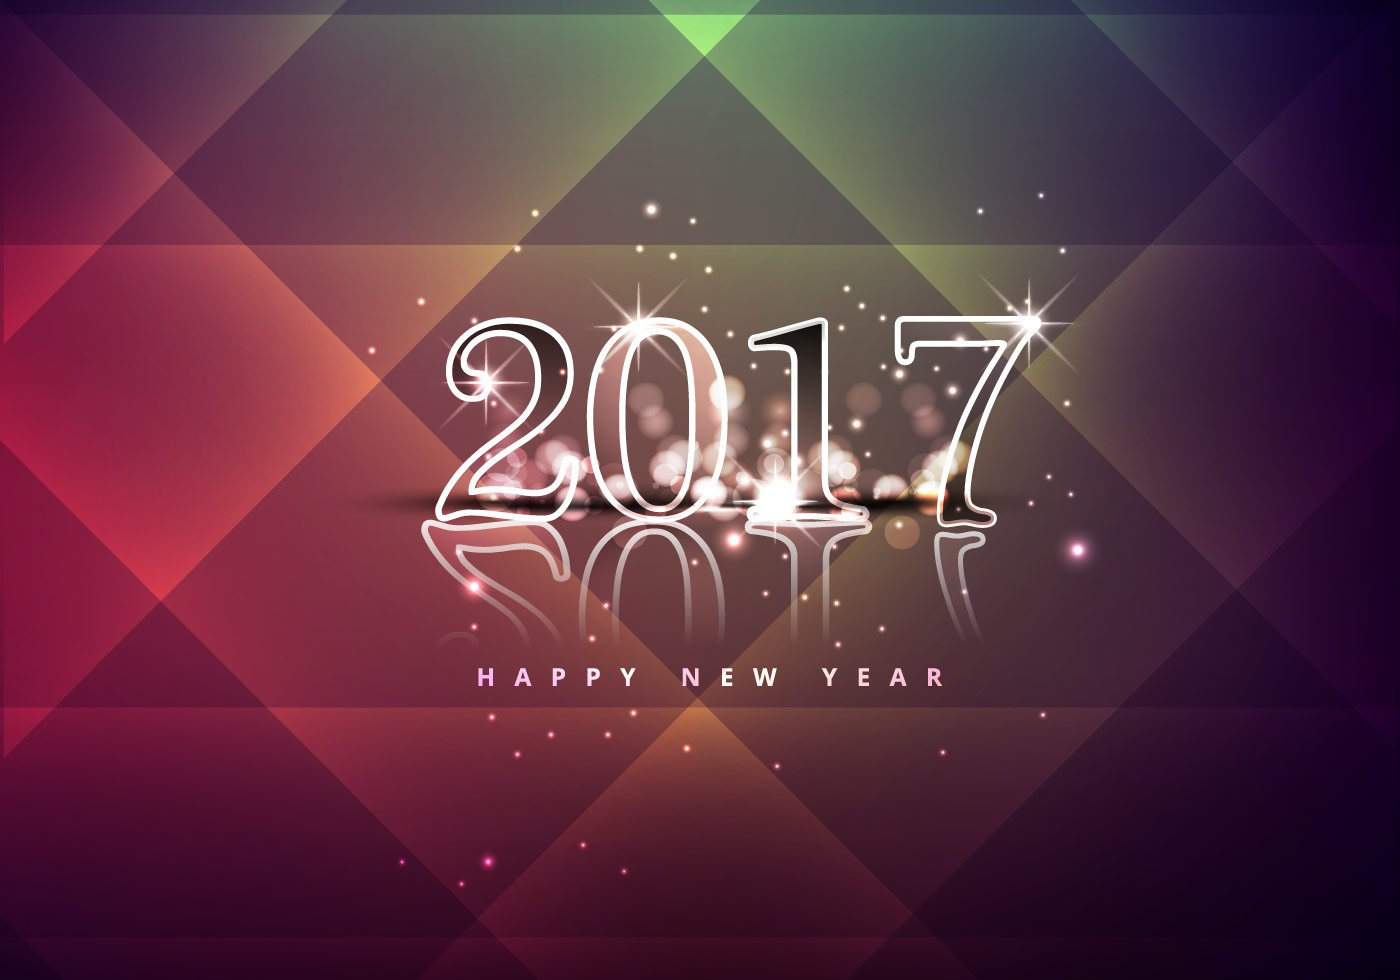 shiny-happy-new-year-2017-vector